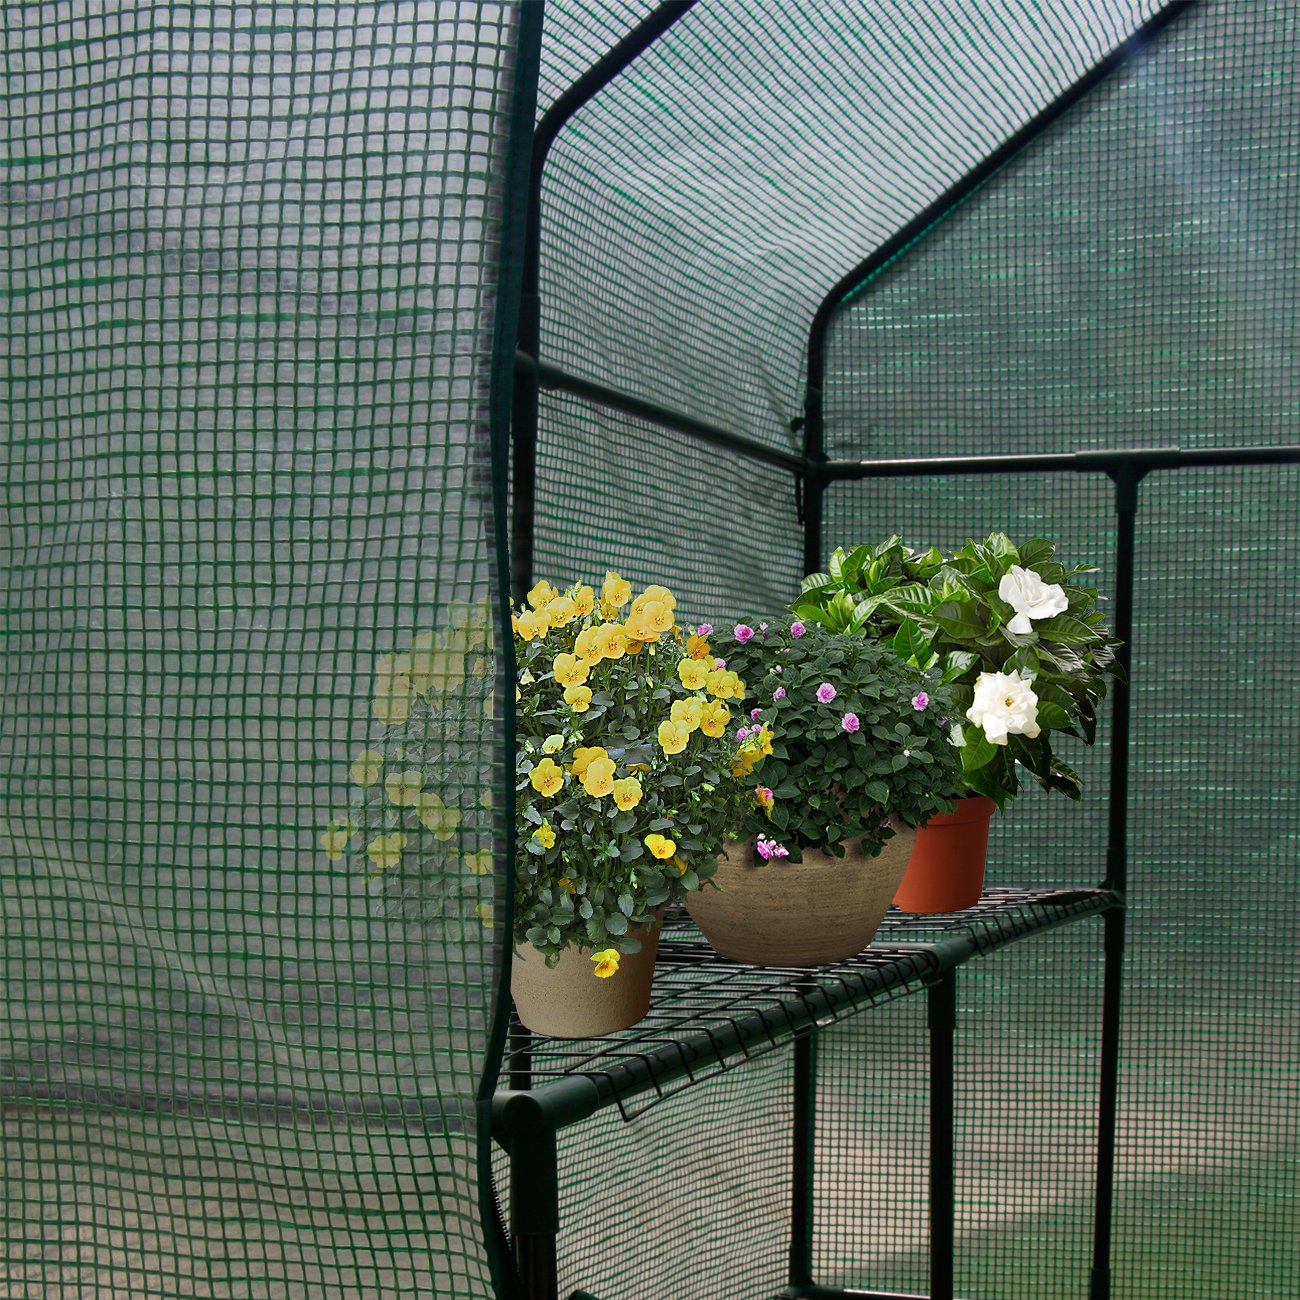 AODAILIHB Reinforced PE Net 6 Layers 8 Shelves Greenhouse Suitable for Lawn and Garden Steel Structure Assembly, 8 Fixed Buttons 4 Floor Fasteners, H x L x W:76.77 x 56.29 x 56.29 inch (02) by AODAILIHB (Image #5)